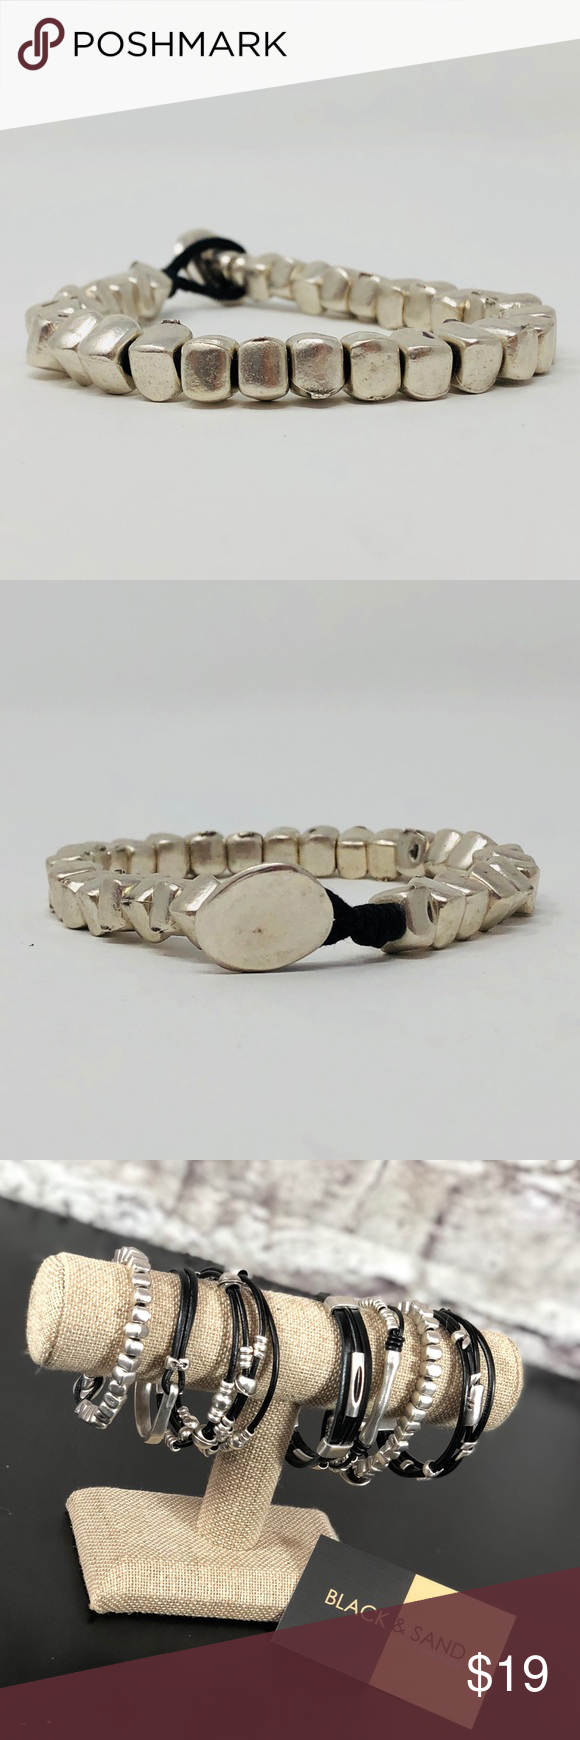 New silver tone leather bracelet turkish design boutique in